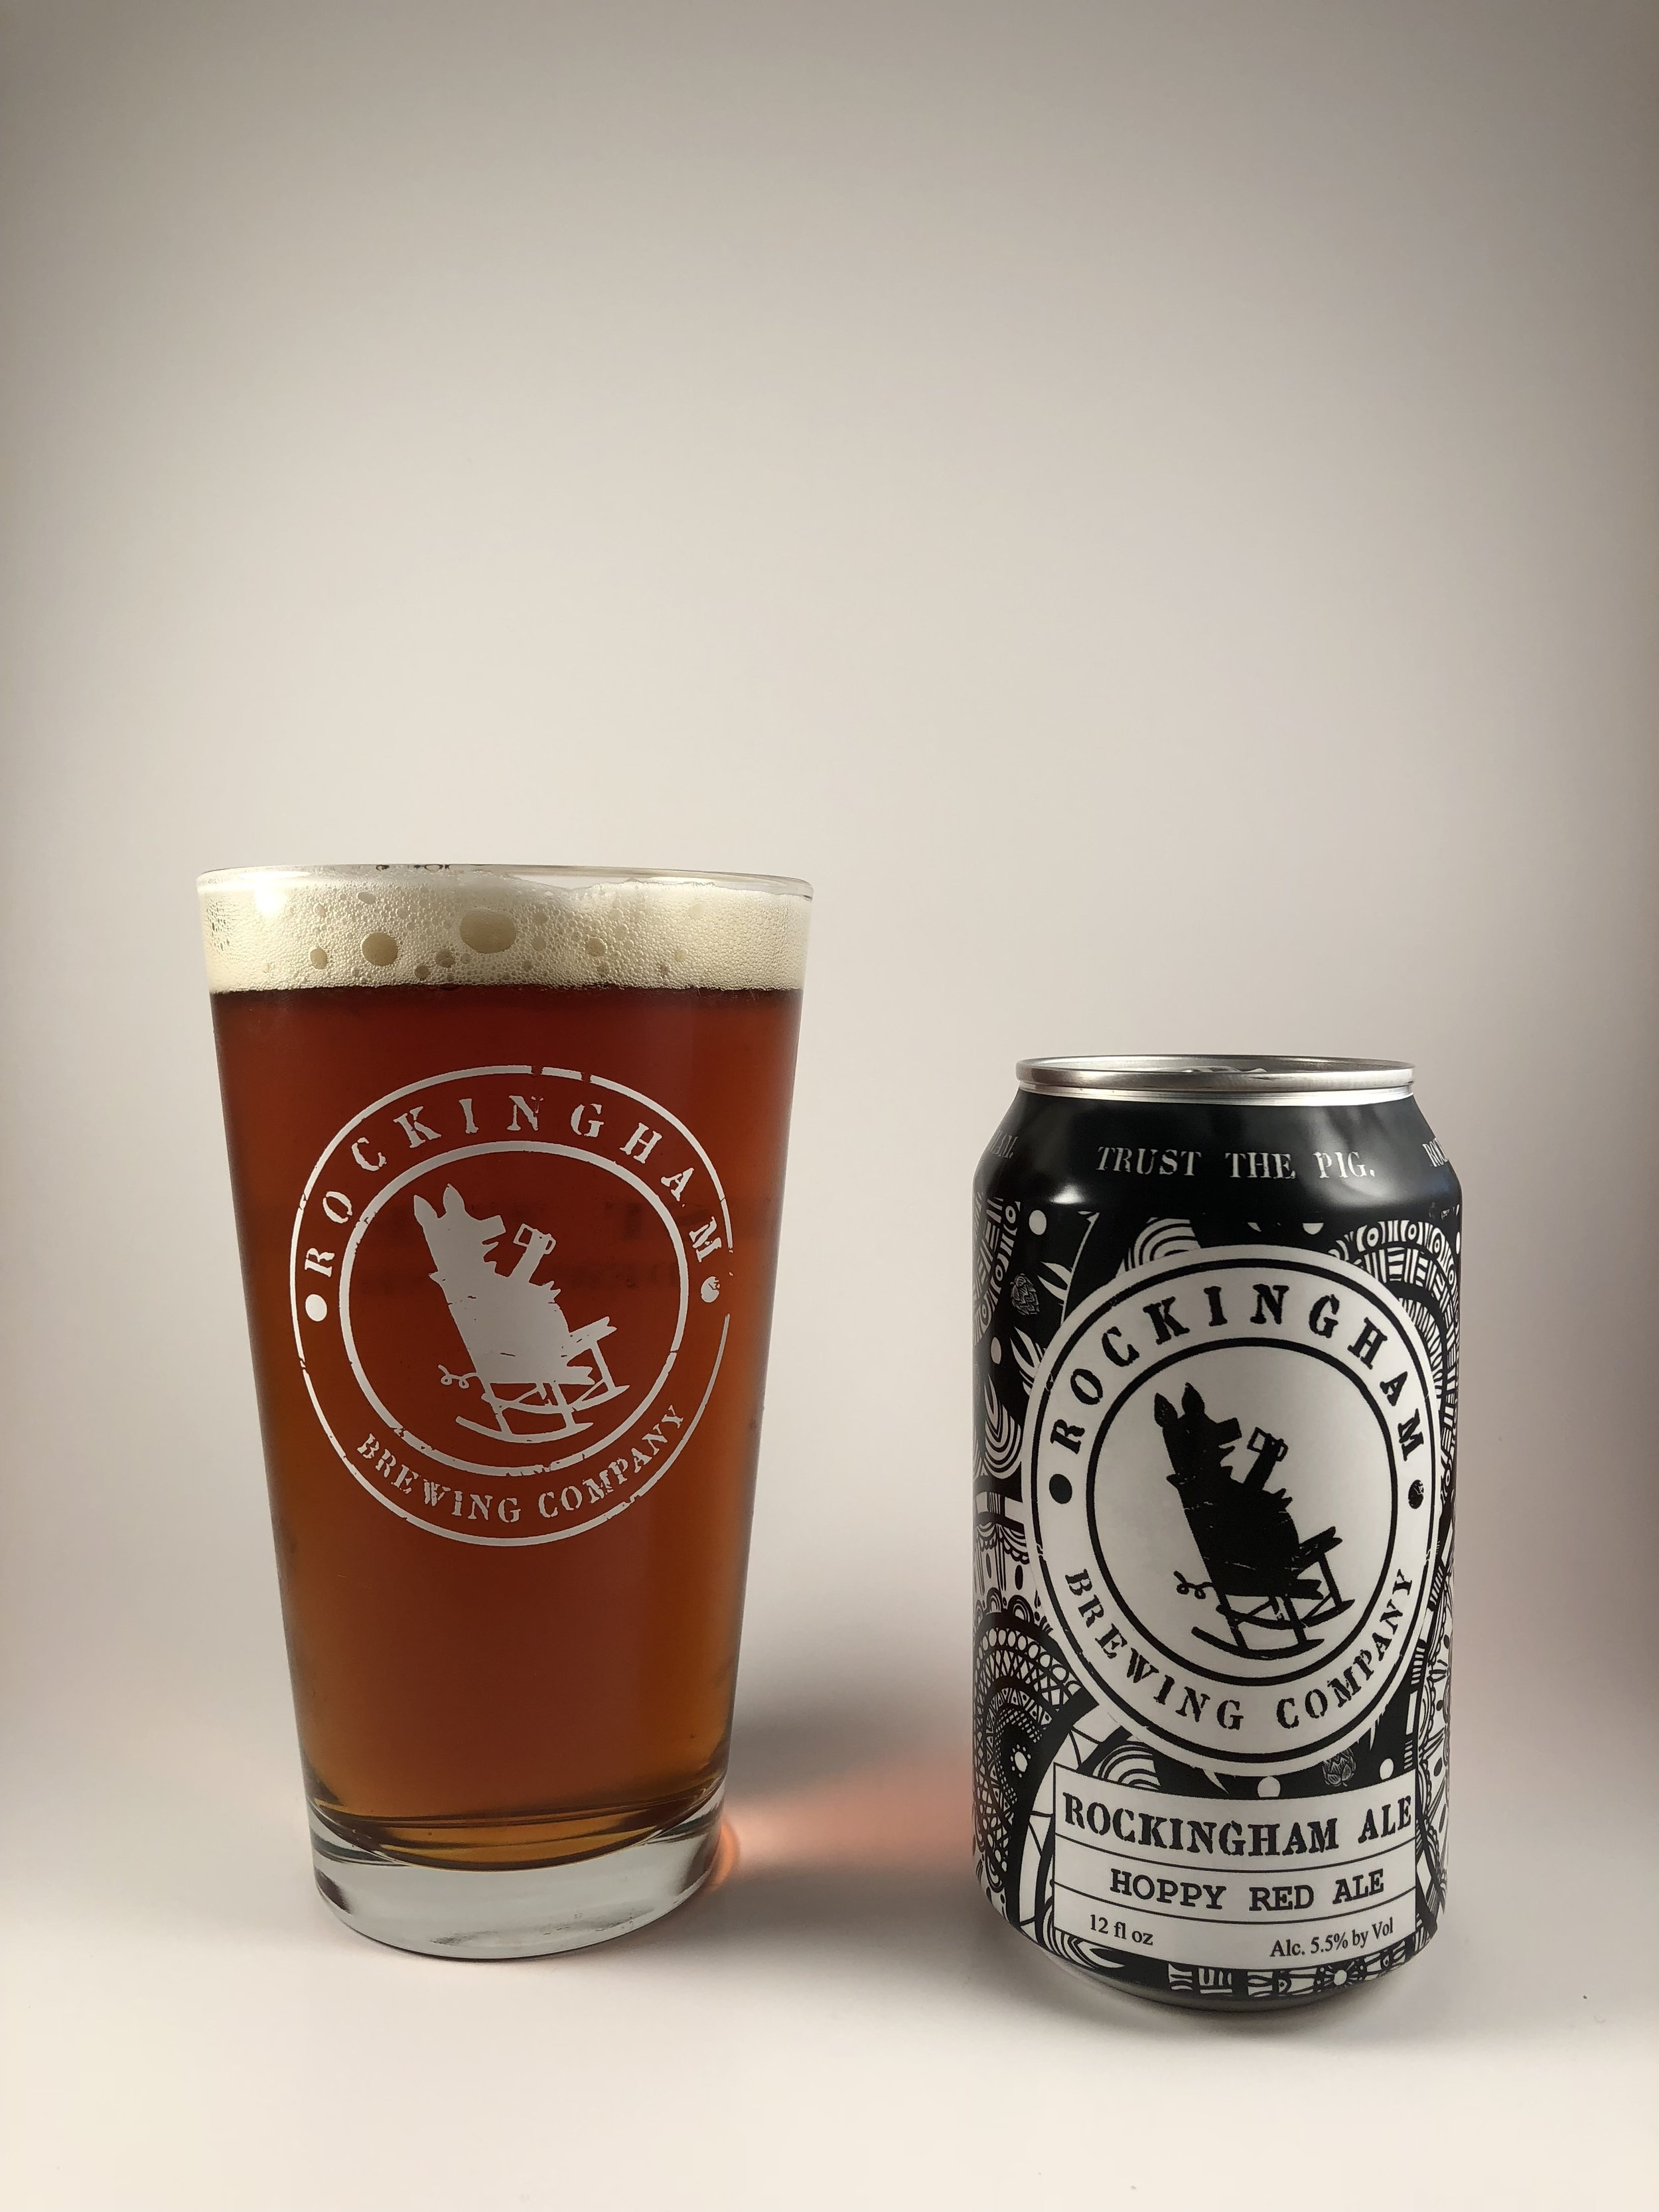 Rockingham Ale  Hoppy Red Ale 5.5% ABV Caramel with notes of pine and citrus